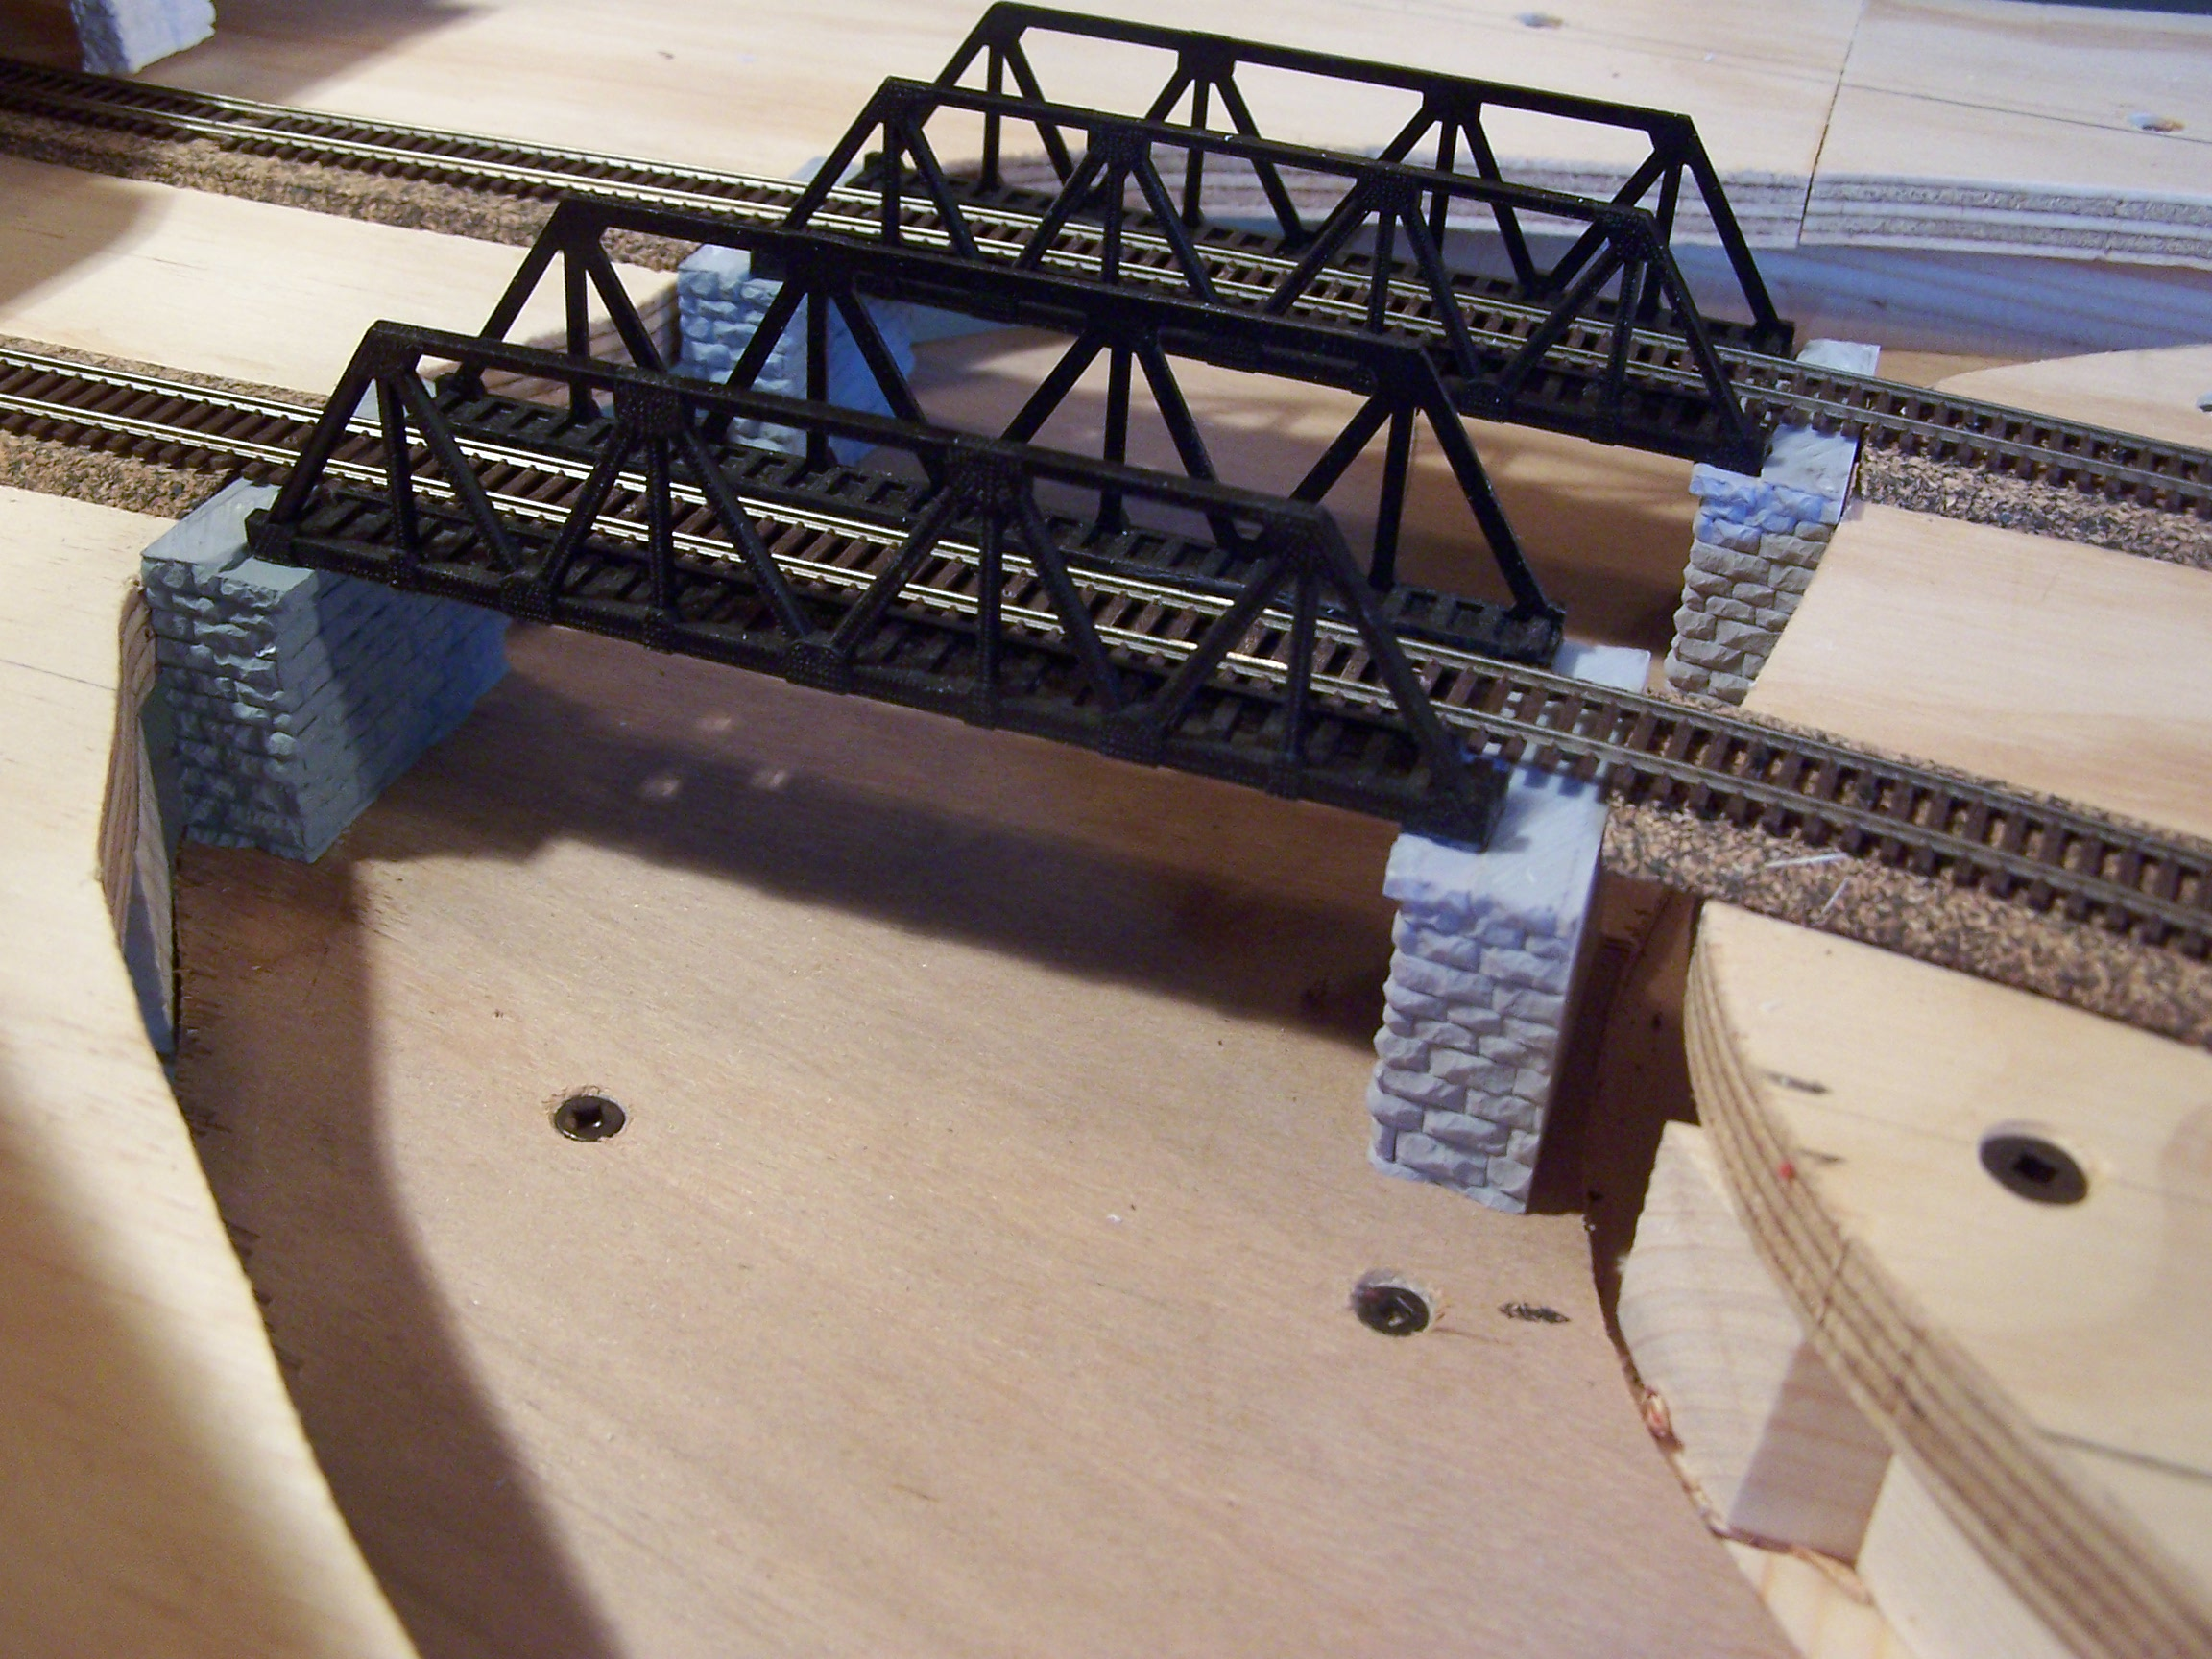 1000+ images about HO Model Railroading DIY on Pinterest.